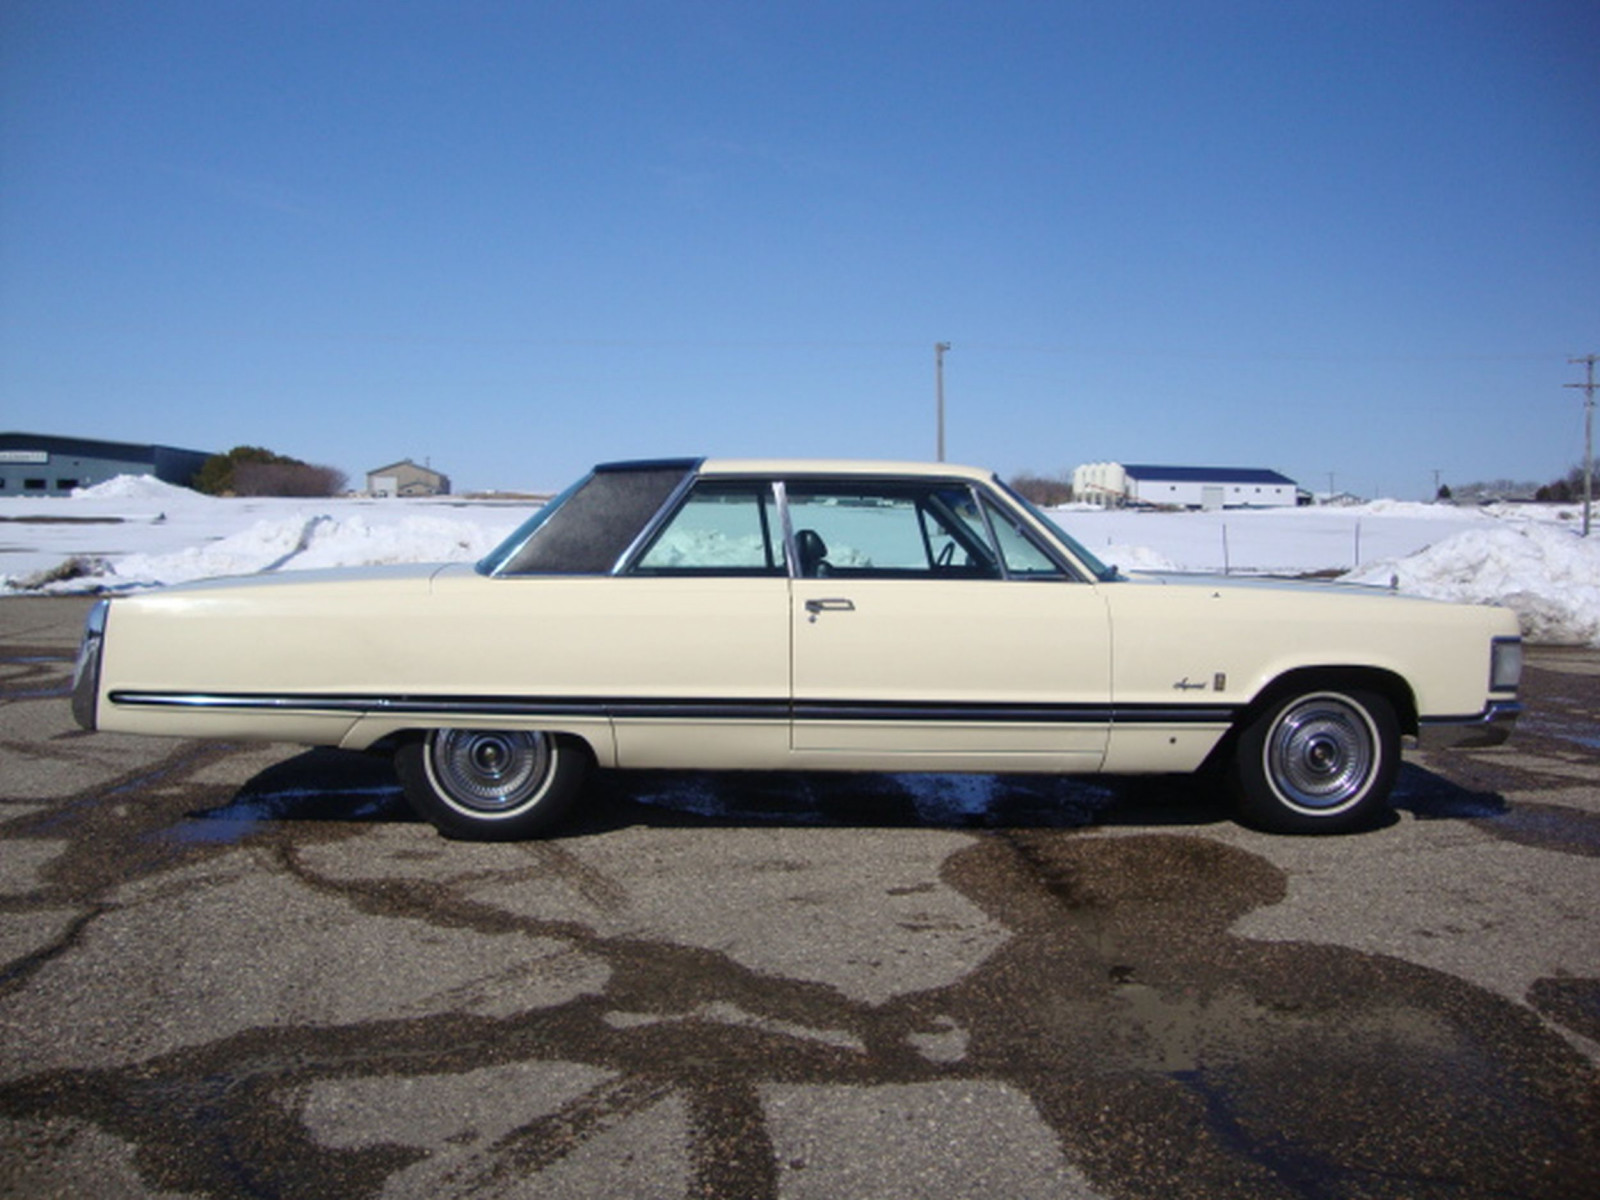 1967 Chrysler Imperial Crown Coupe - Image 6